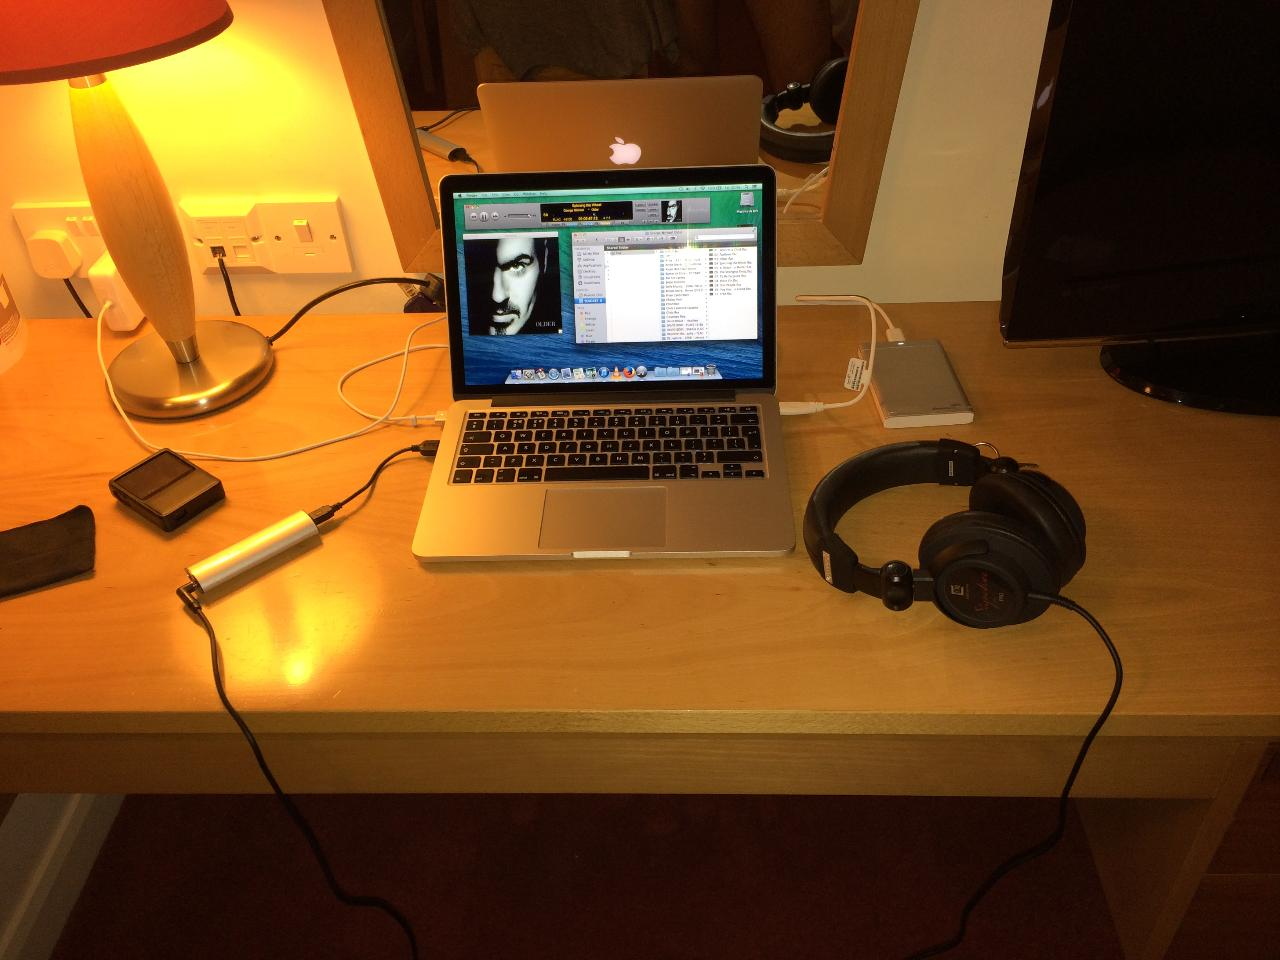 My latest Audio Bliss, Macbook Pro Retina, Meridian Explorer and Ultrasone Sig Pro!!!